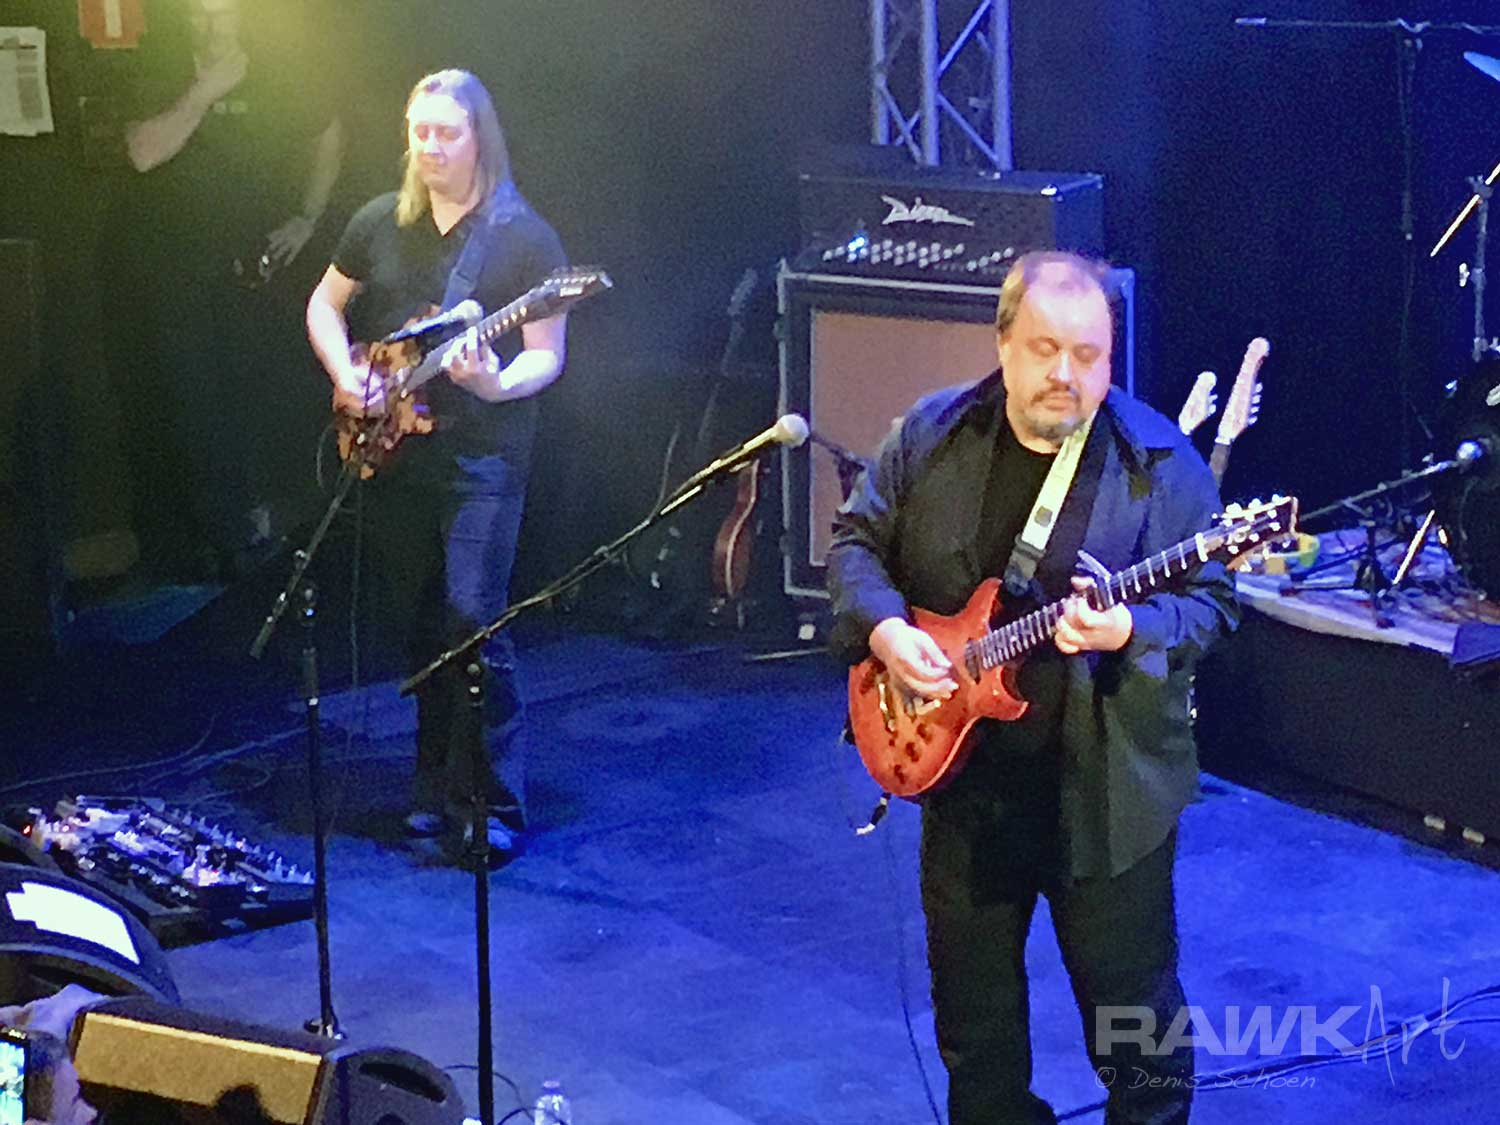 Steve Rothery at De Pul, Uden, Netherlands 2017, Ghosts and Garden Parties